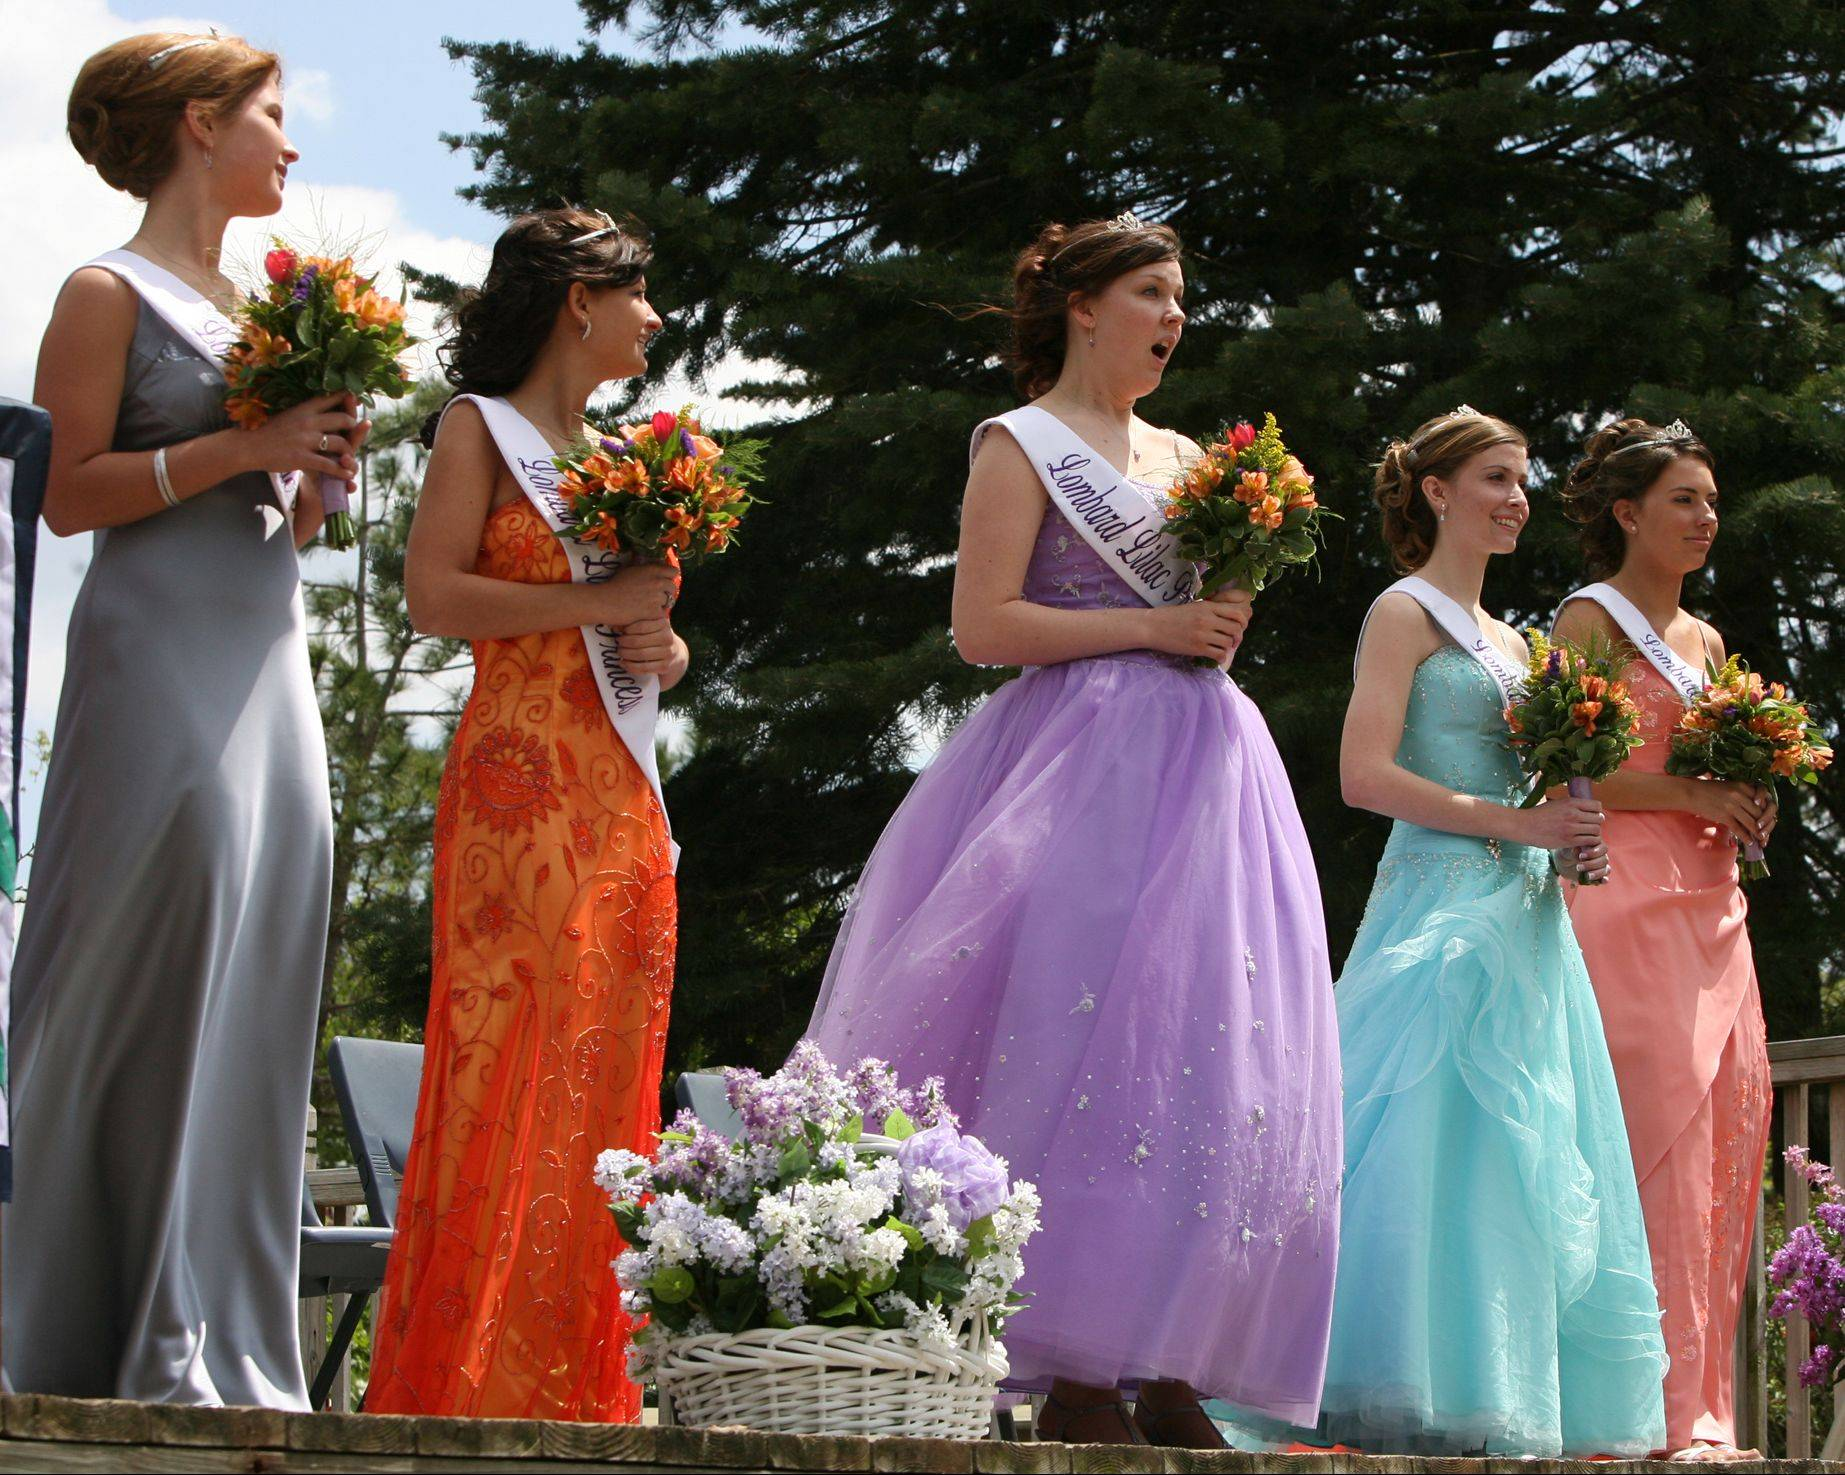 Lilac Princesses, including 2009 queen Jamie Lemens, are recognized during a ceremony at Lilacia Park. This year's Lilac Queen coronation will continue a tradition of more than 80 years as it takes place at 1 p.m. Saturday, May 4, in the park.